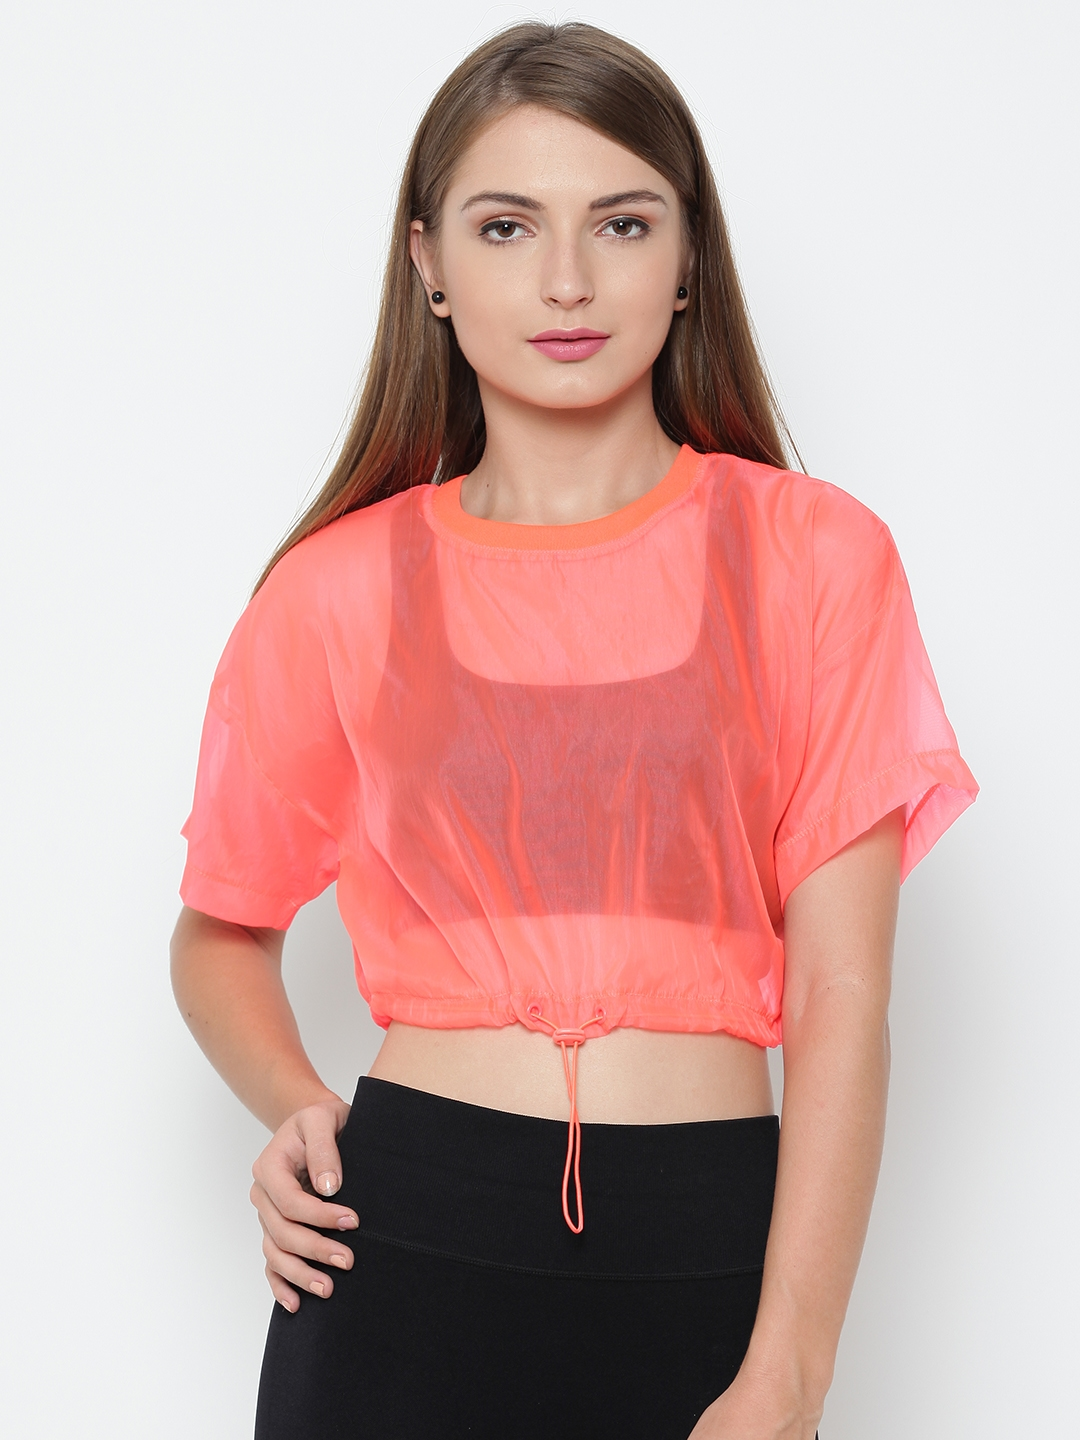 d54e426e3511bf Buy FOREVER 21 Women Neon Orange Solid Crop Sheer Top - Tops for ...